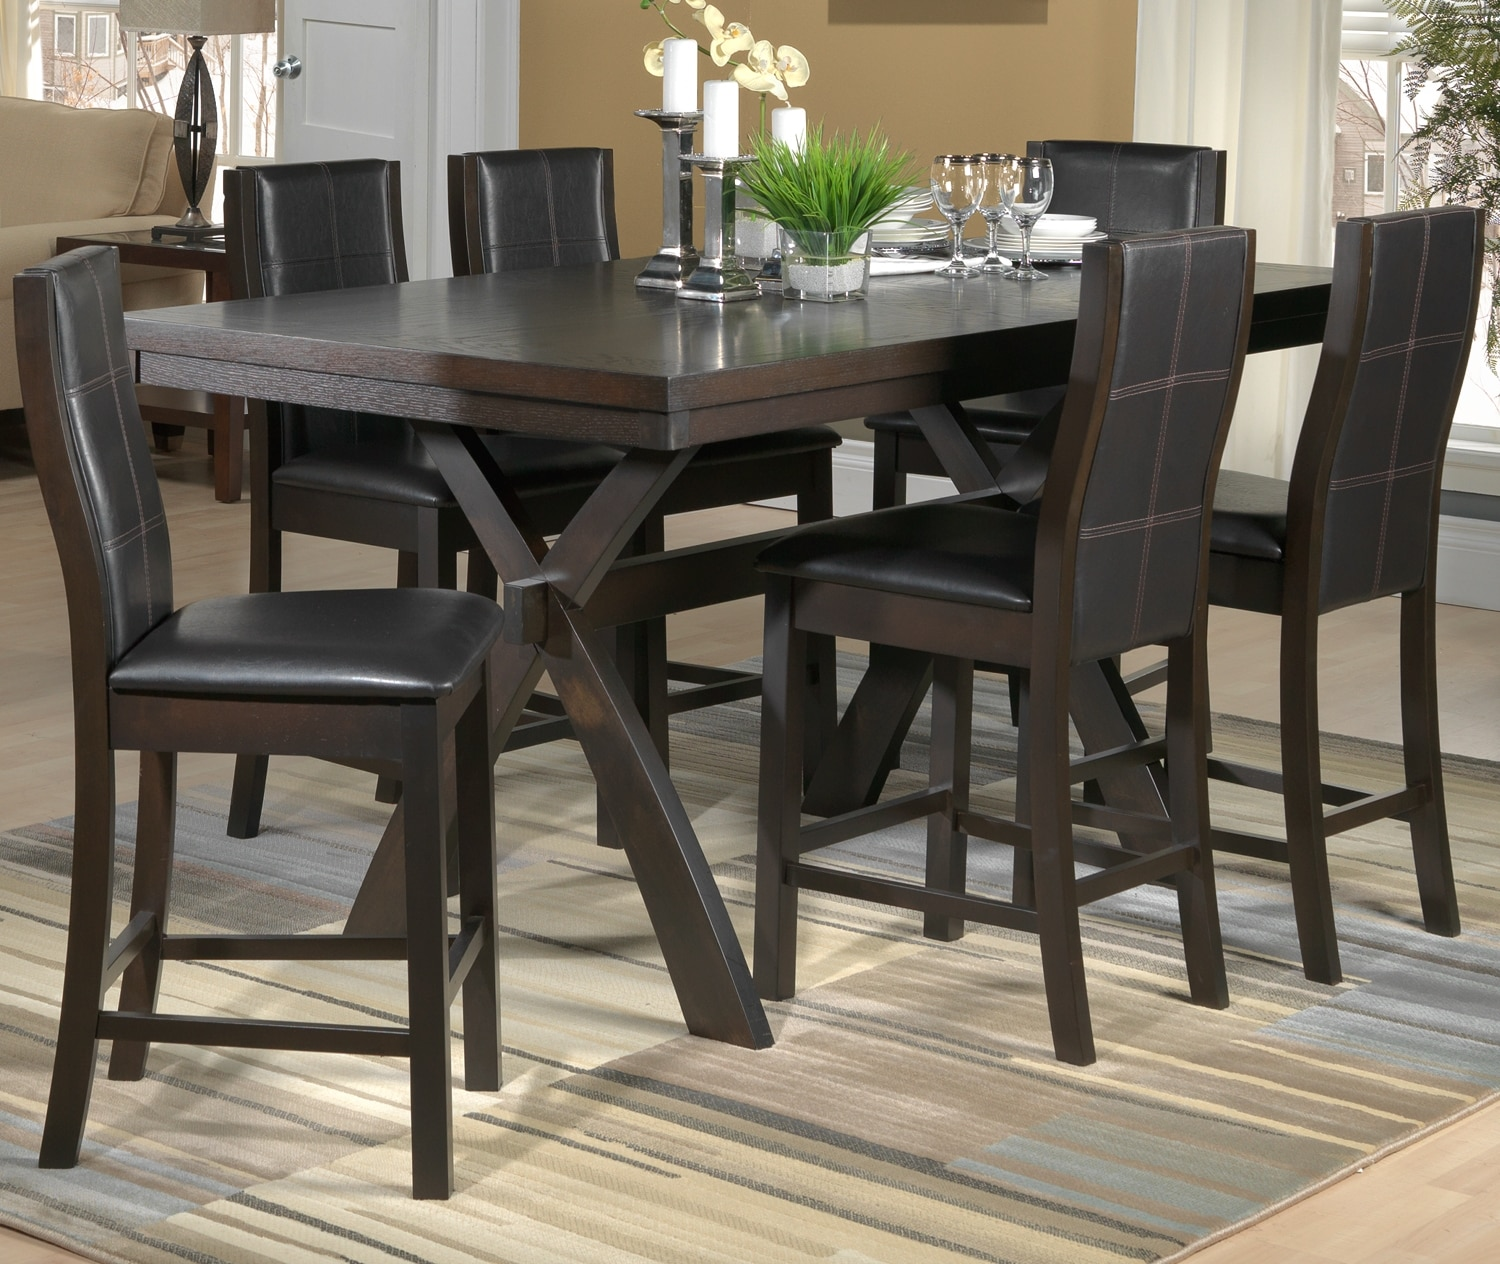 Dining Room Furniture - Grethell 7-Piece Pub-Height Dining Room Set - Espresso